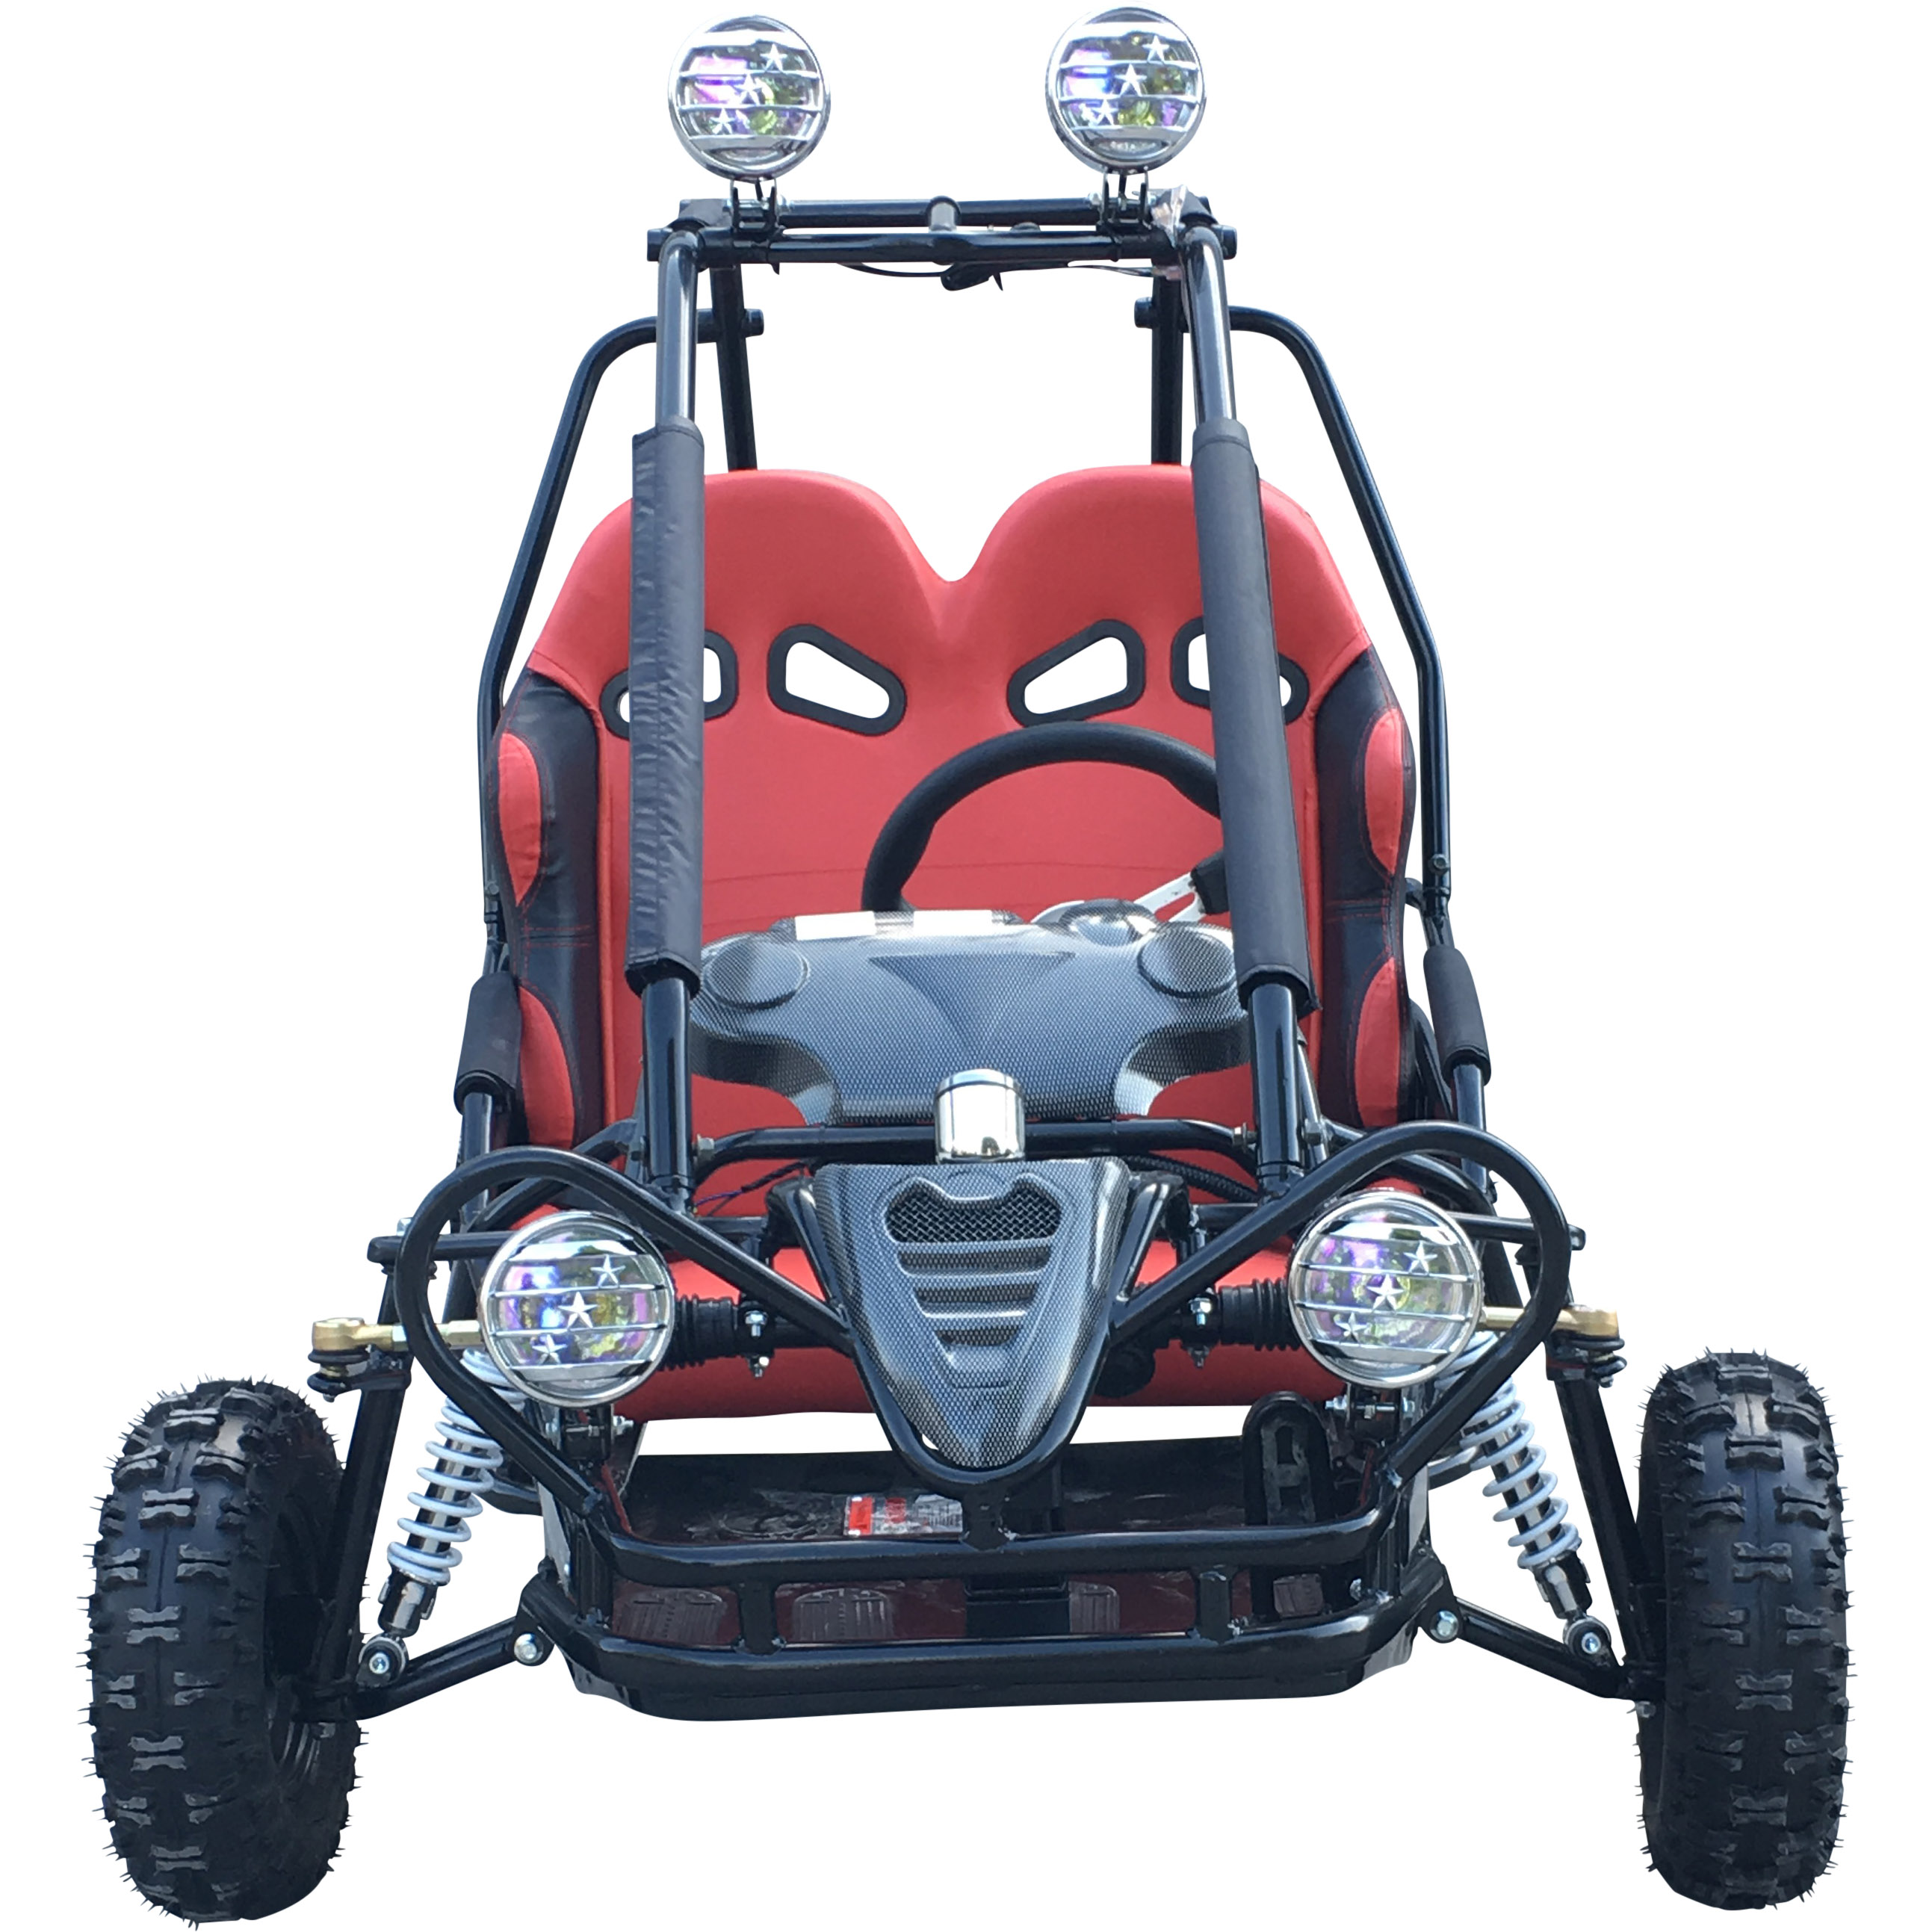 Renegade Go Kart Wiring Diagrams All Points 421265 On Off Circuit Breaker Switch 30a 250v 36v Electric Two Seater Black 5060567550177 Ebay Rh Co Uk Bodies Sports Karts